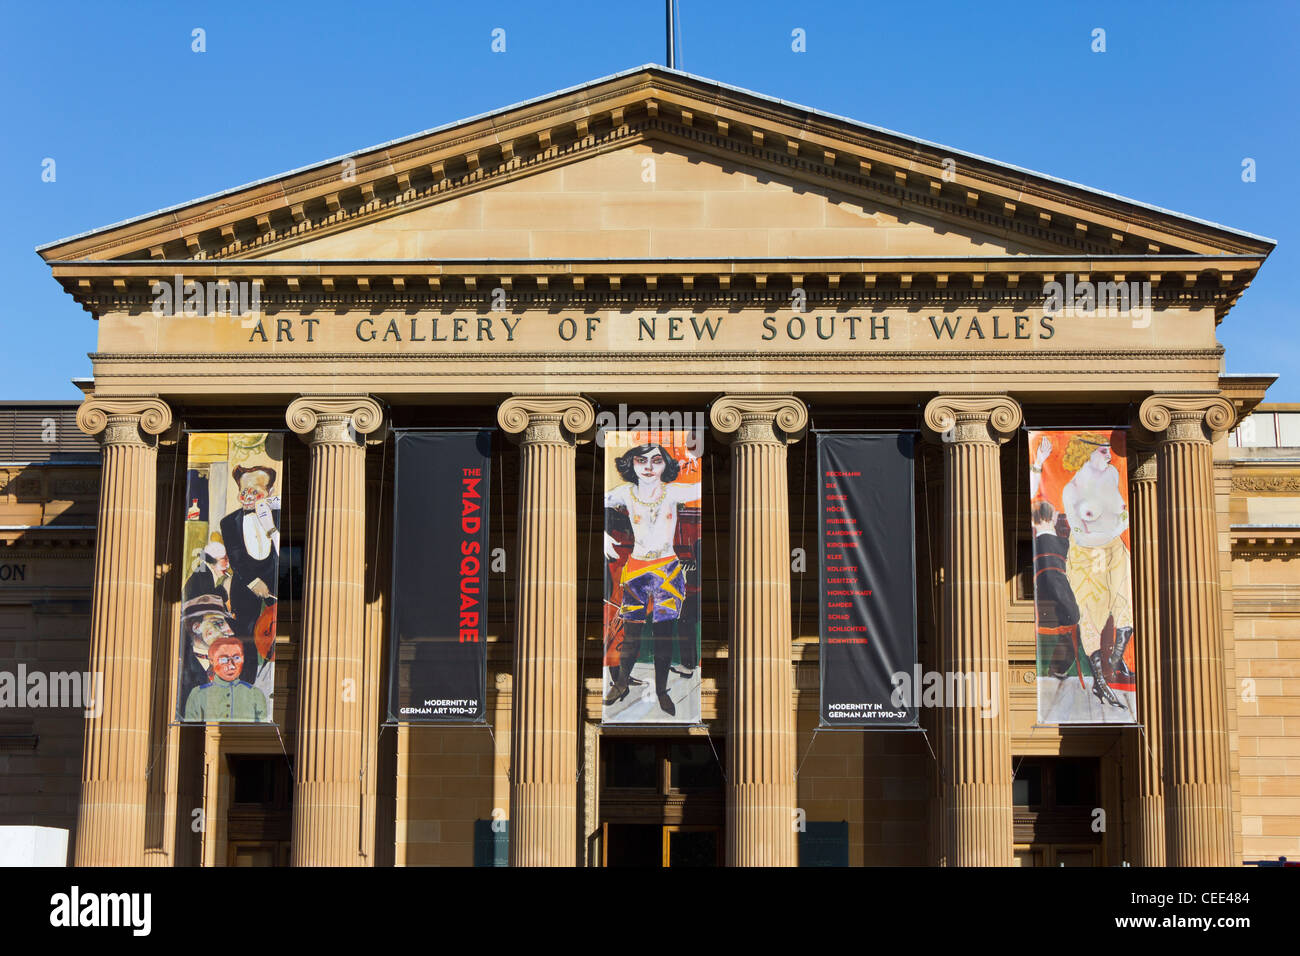 entrance facade of Art Gallery of New South Wales, Sydney, New South Wales, Australia - Stock Image